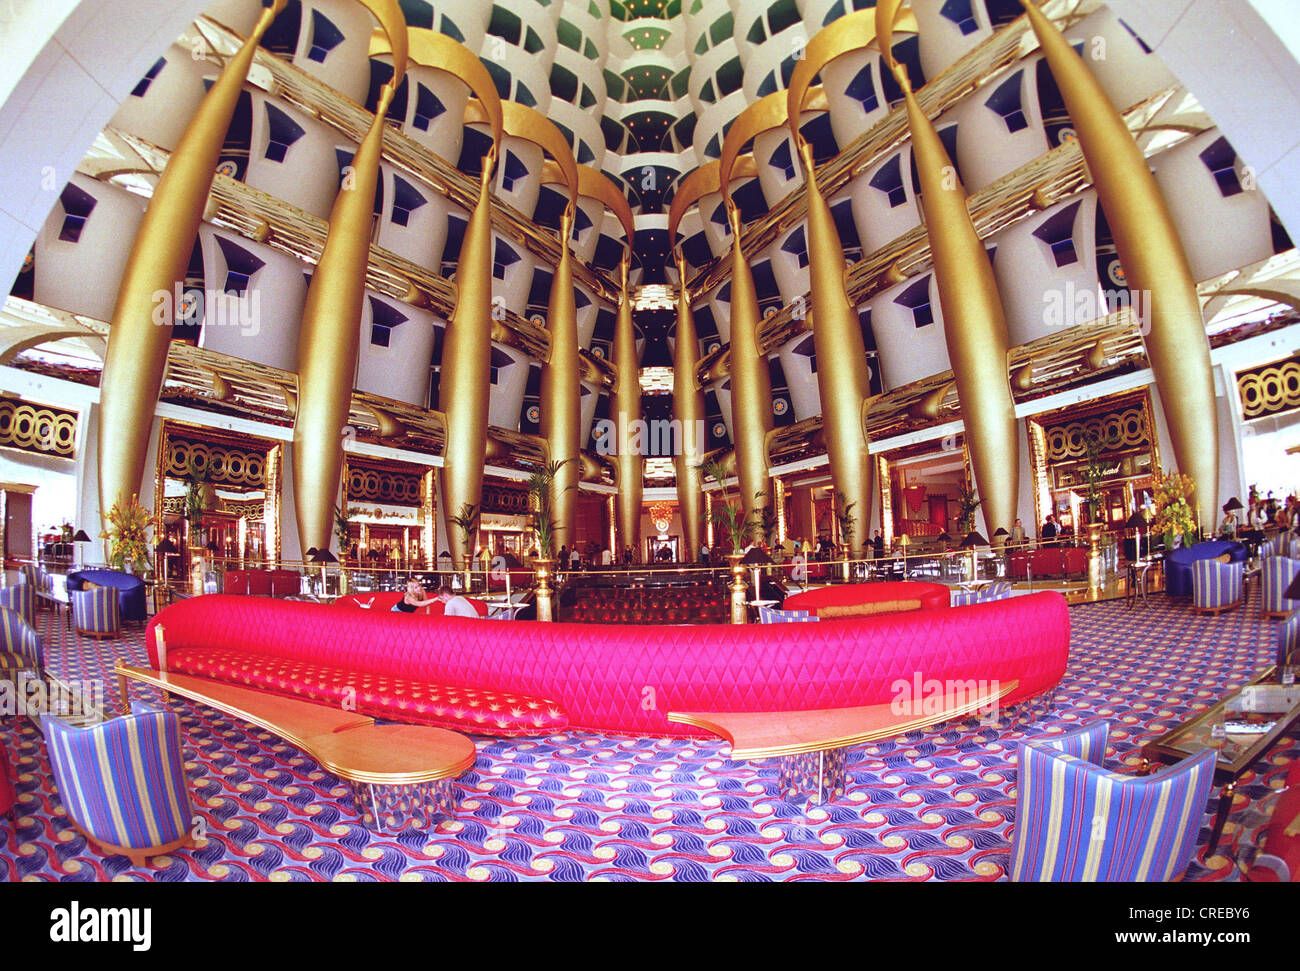 Burj al arab the most expensive hotel in the world dubai for Most expensive hotel in the world